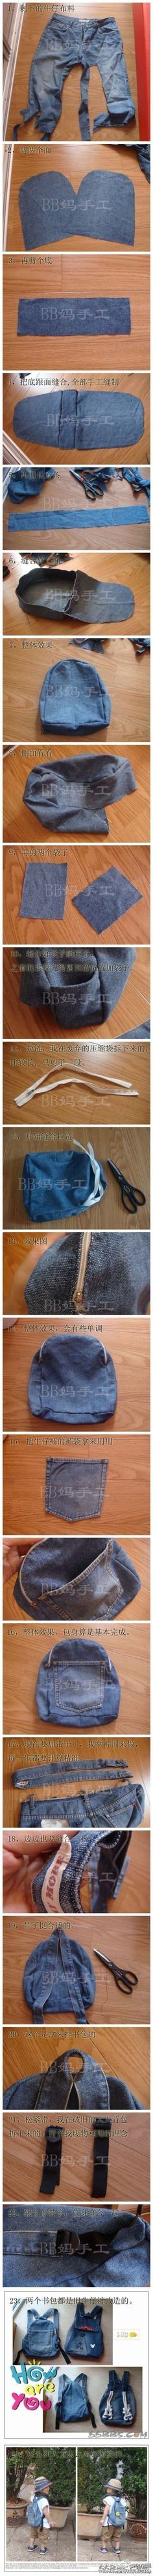 backpacks from old jeans